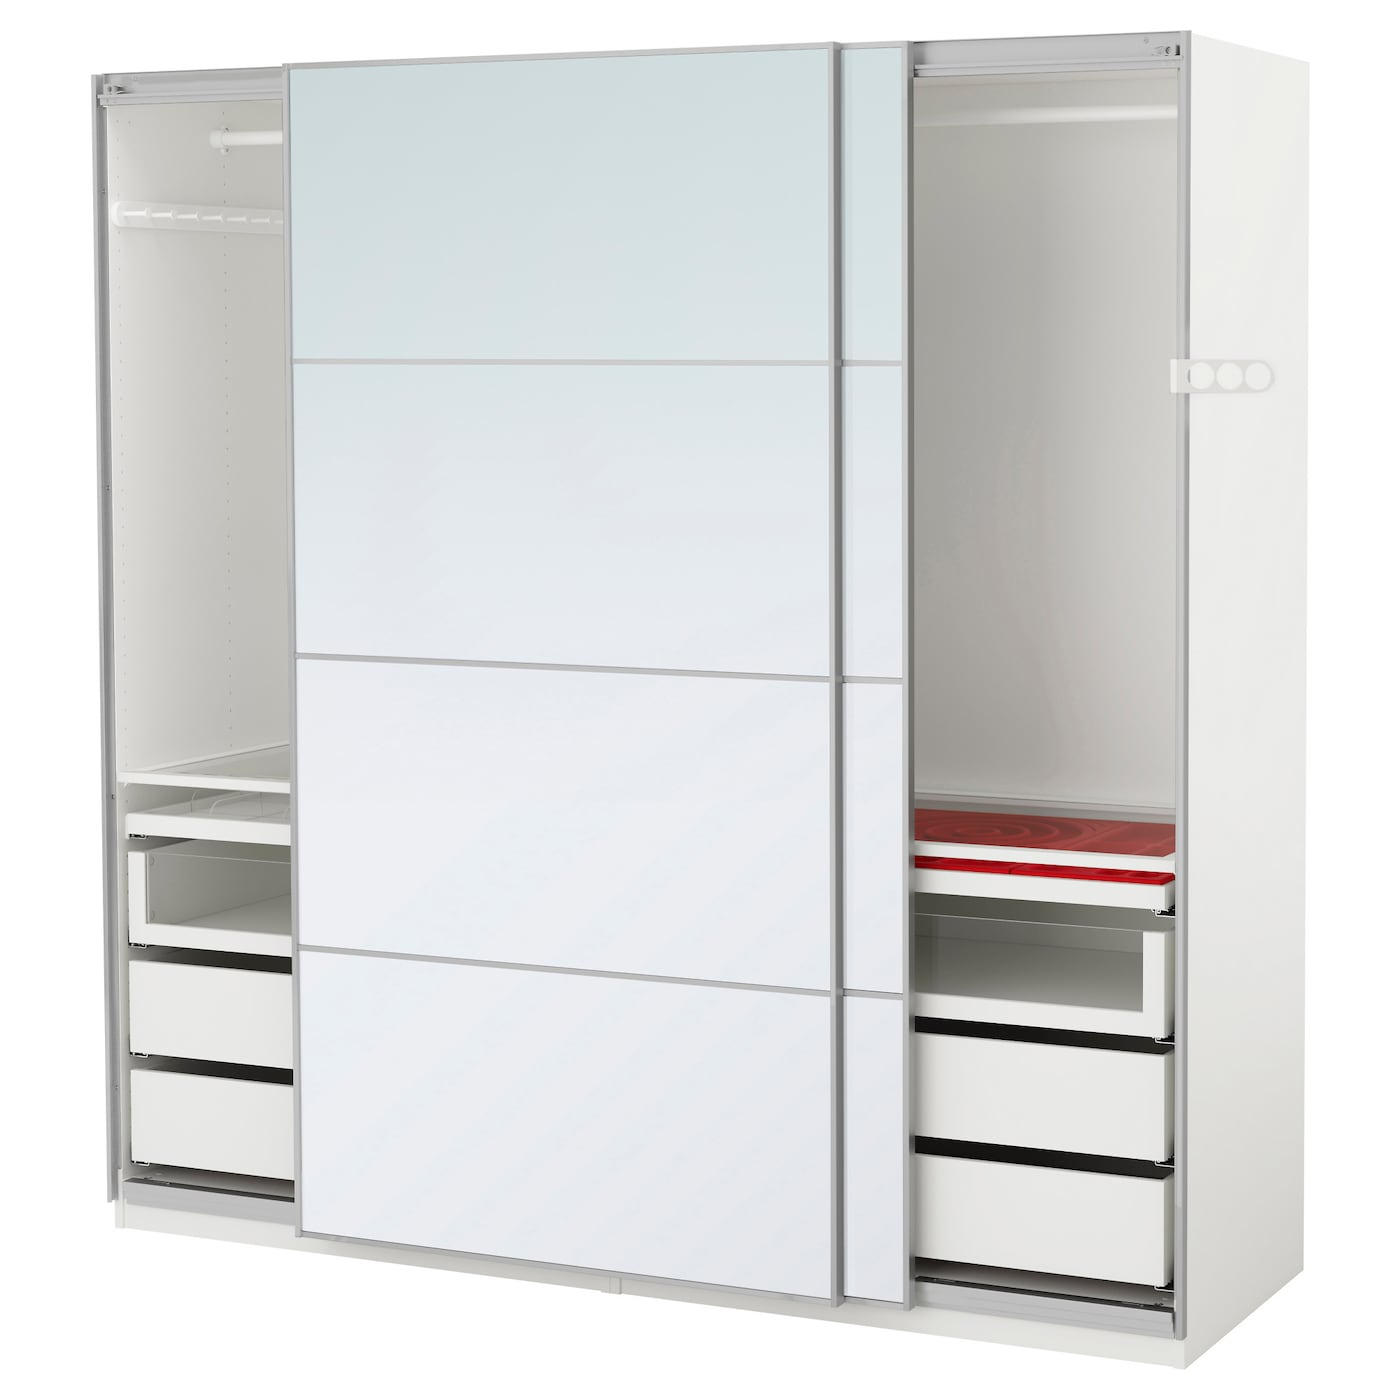 PAX Wardrobe White/auli mirror glass 200x66x201 cm - IKEA